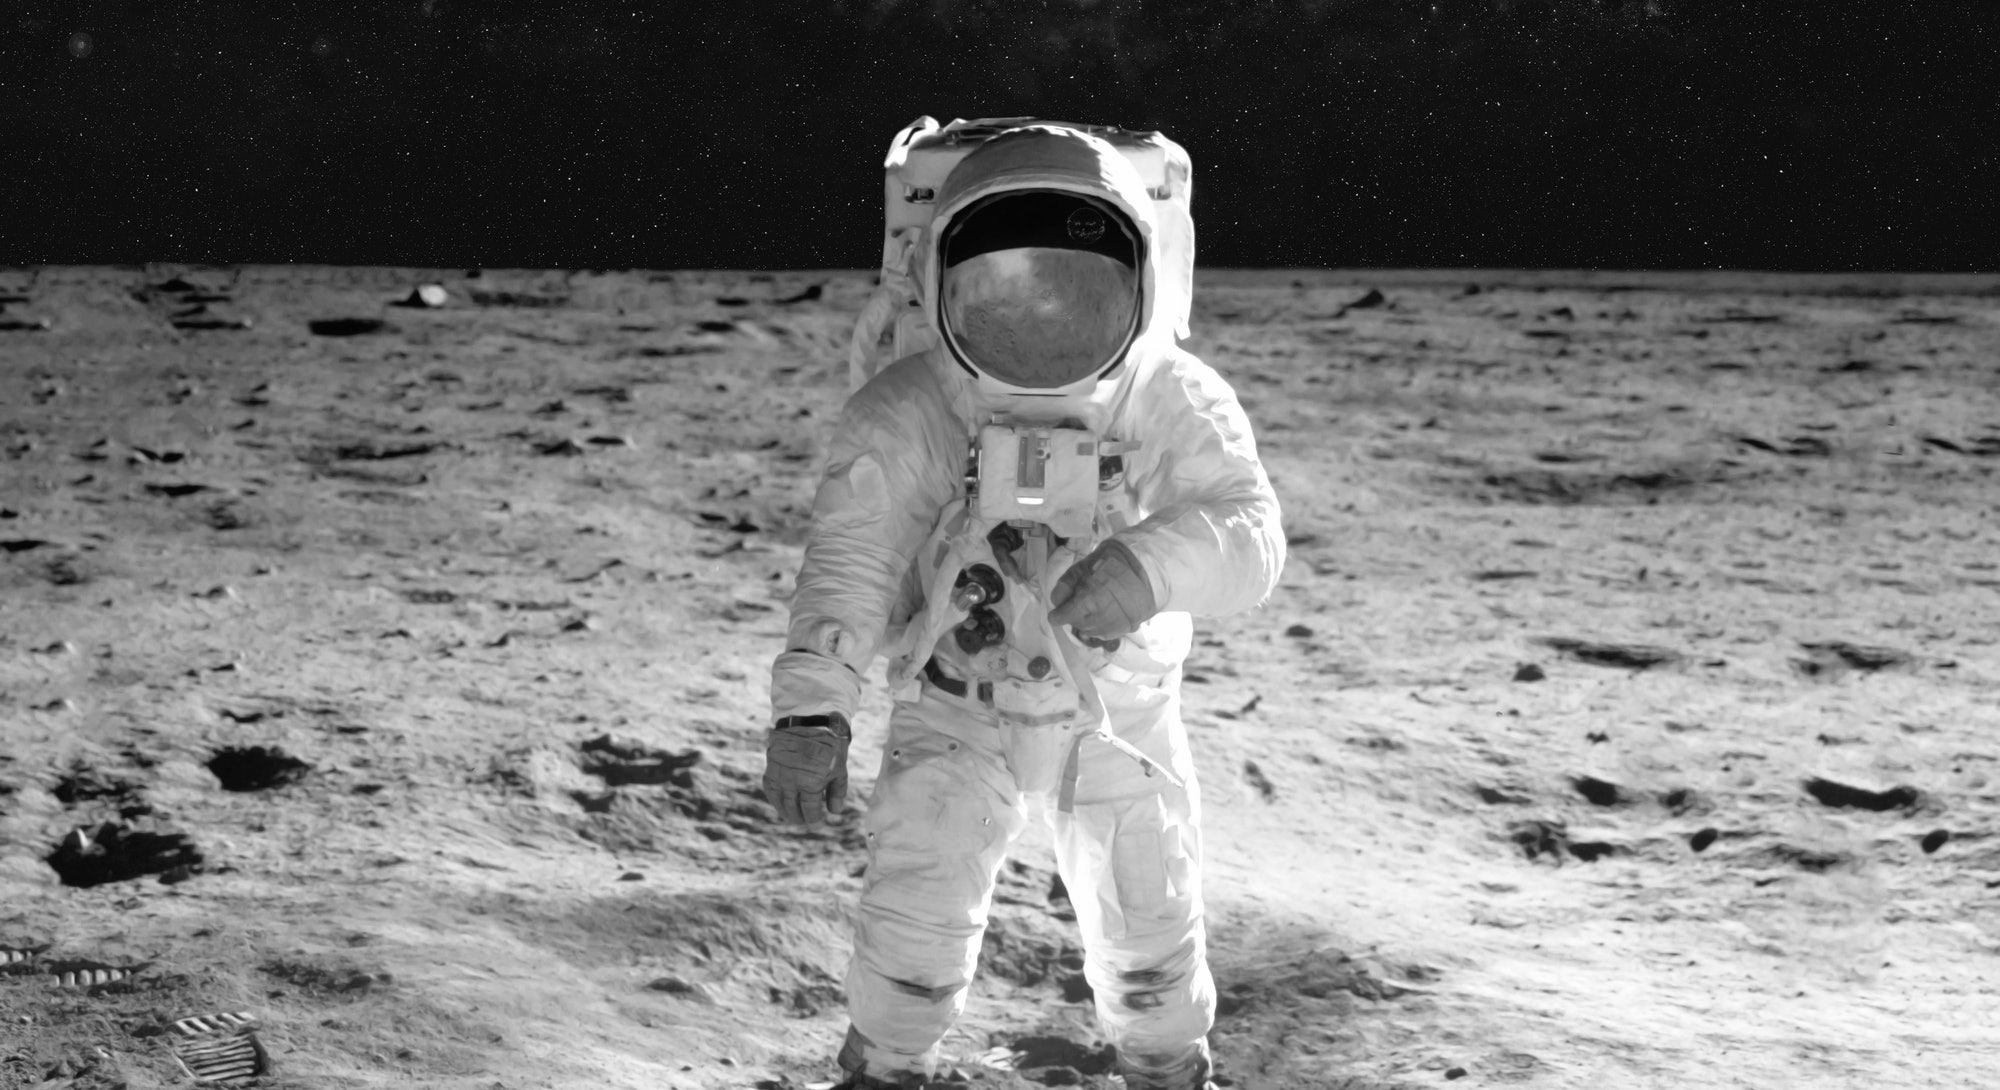 The astronaut goes across the Moon, in a white space suit. Elements of this image were furnished by NASA for any purpose